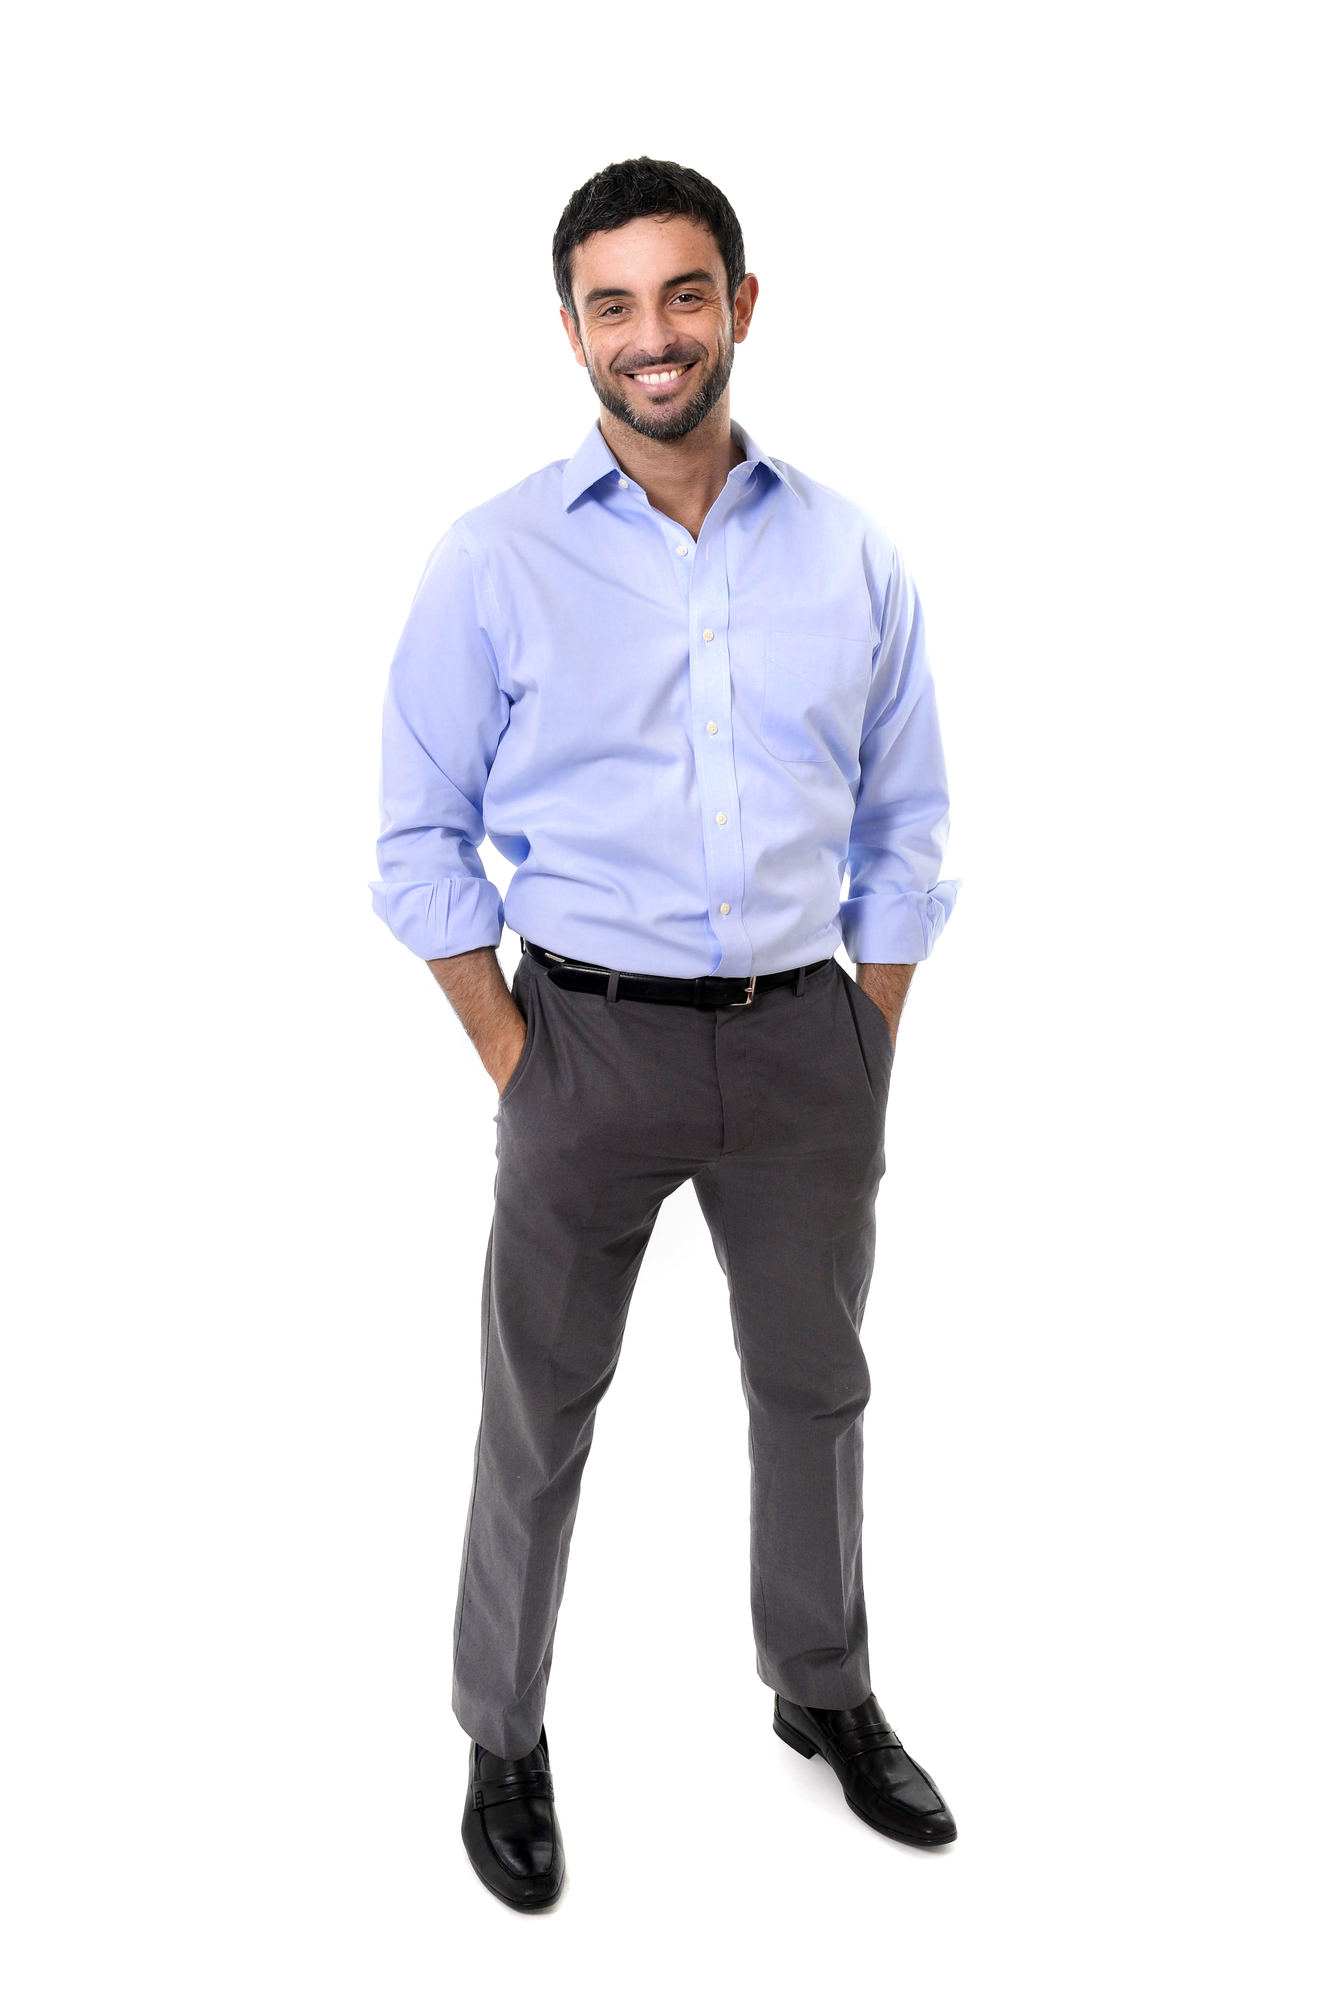 young attractive business man standing in corporate portrait isolated on white background smiling with hands in pockets wearing shirt and suit trousers